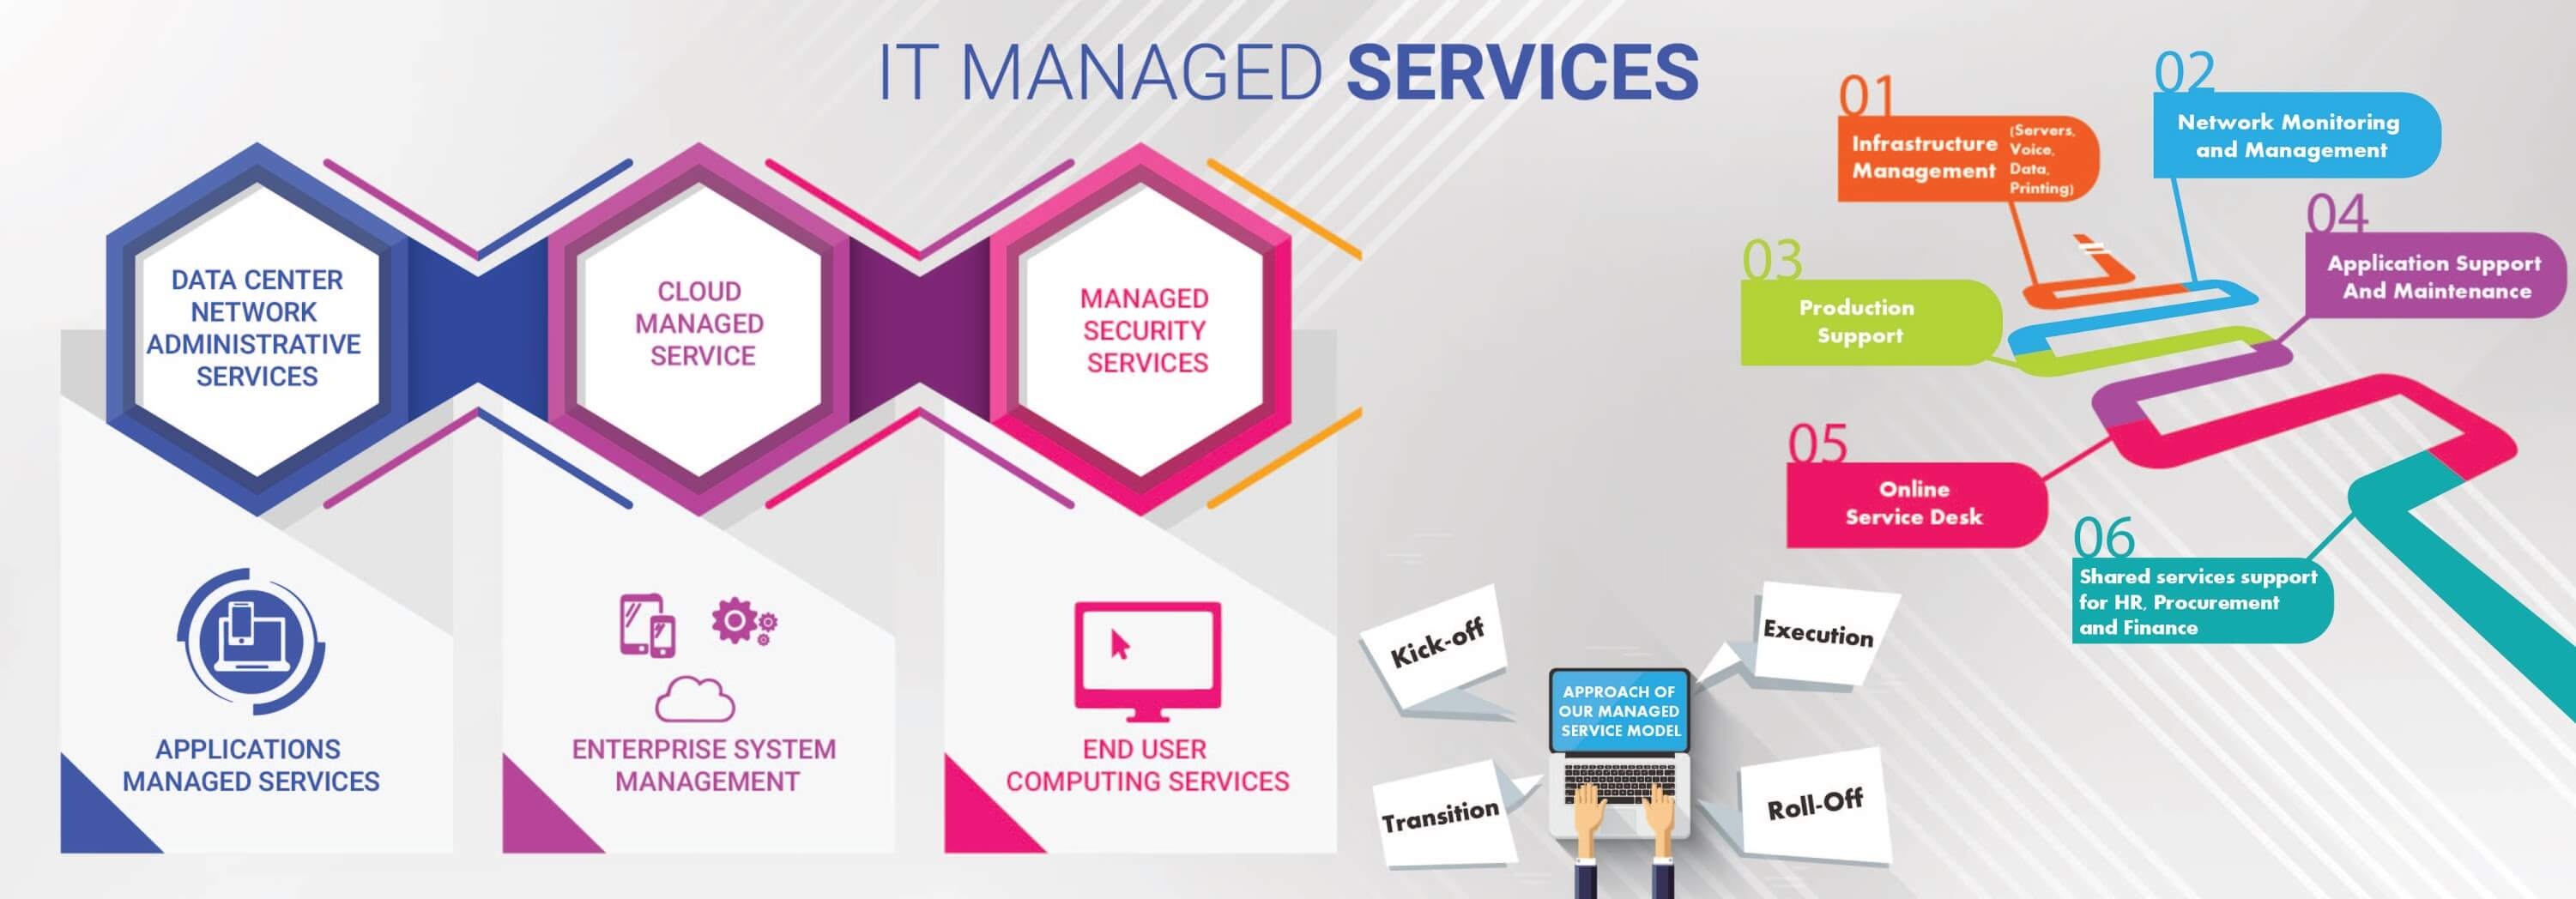 application development managed services